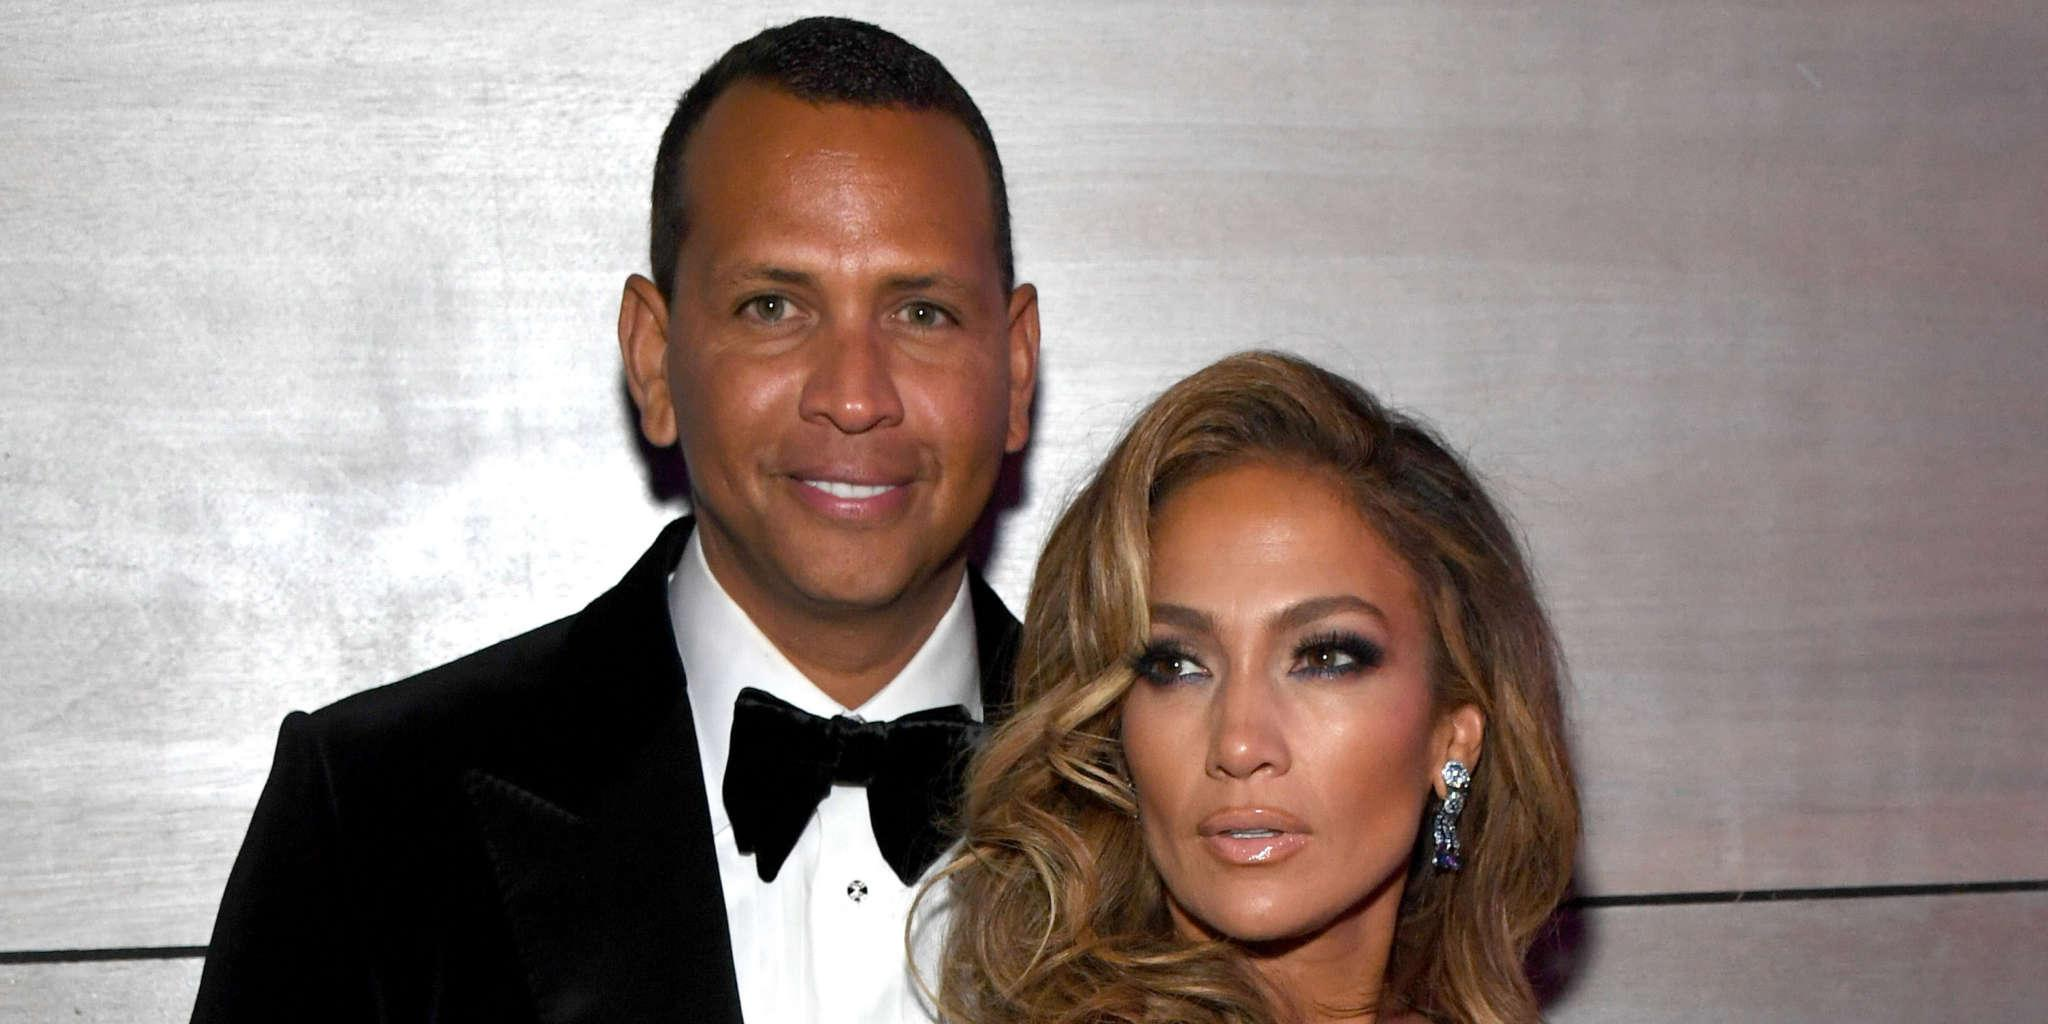 Jennifer Lopez And Alex Rodriguez Rave Over One Another In The Sweetest, Most Romantic Way!